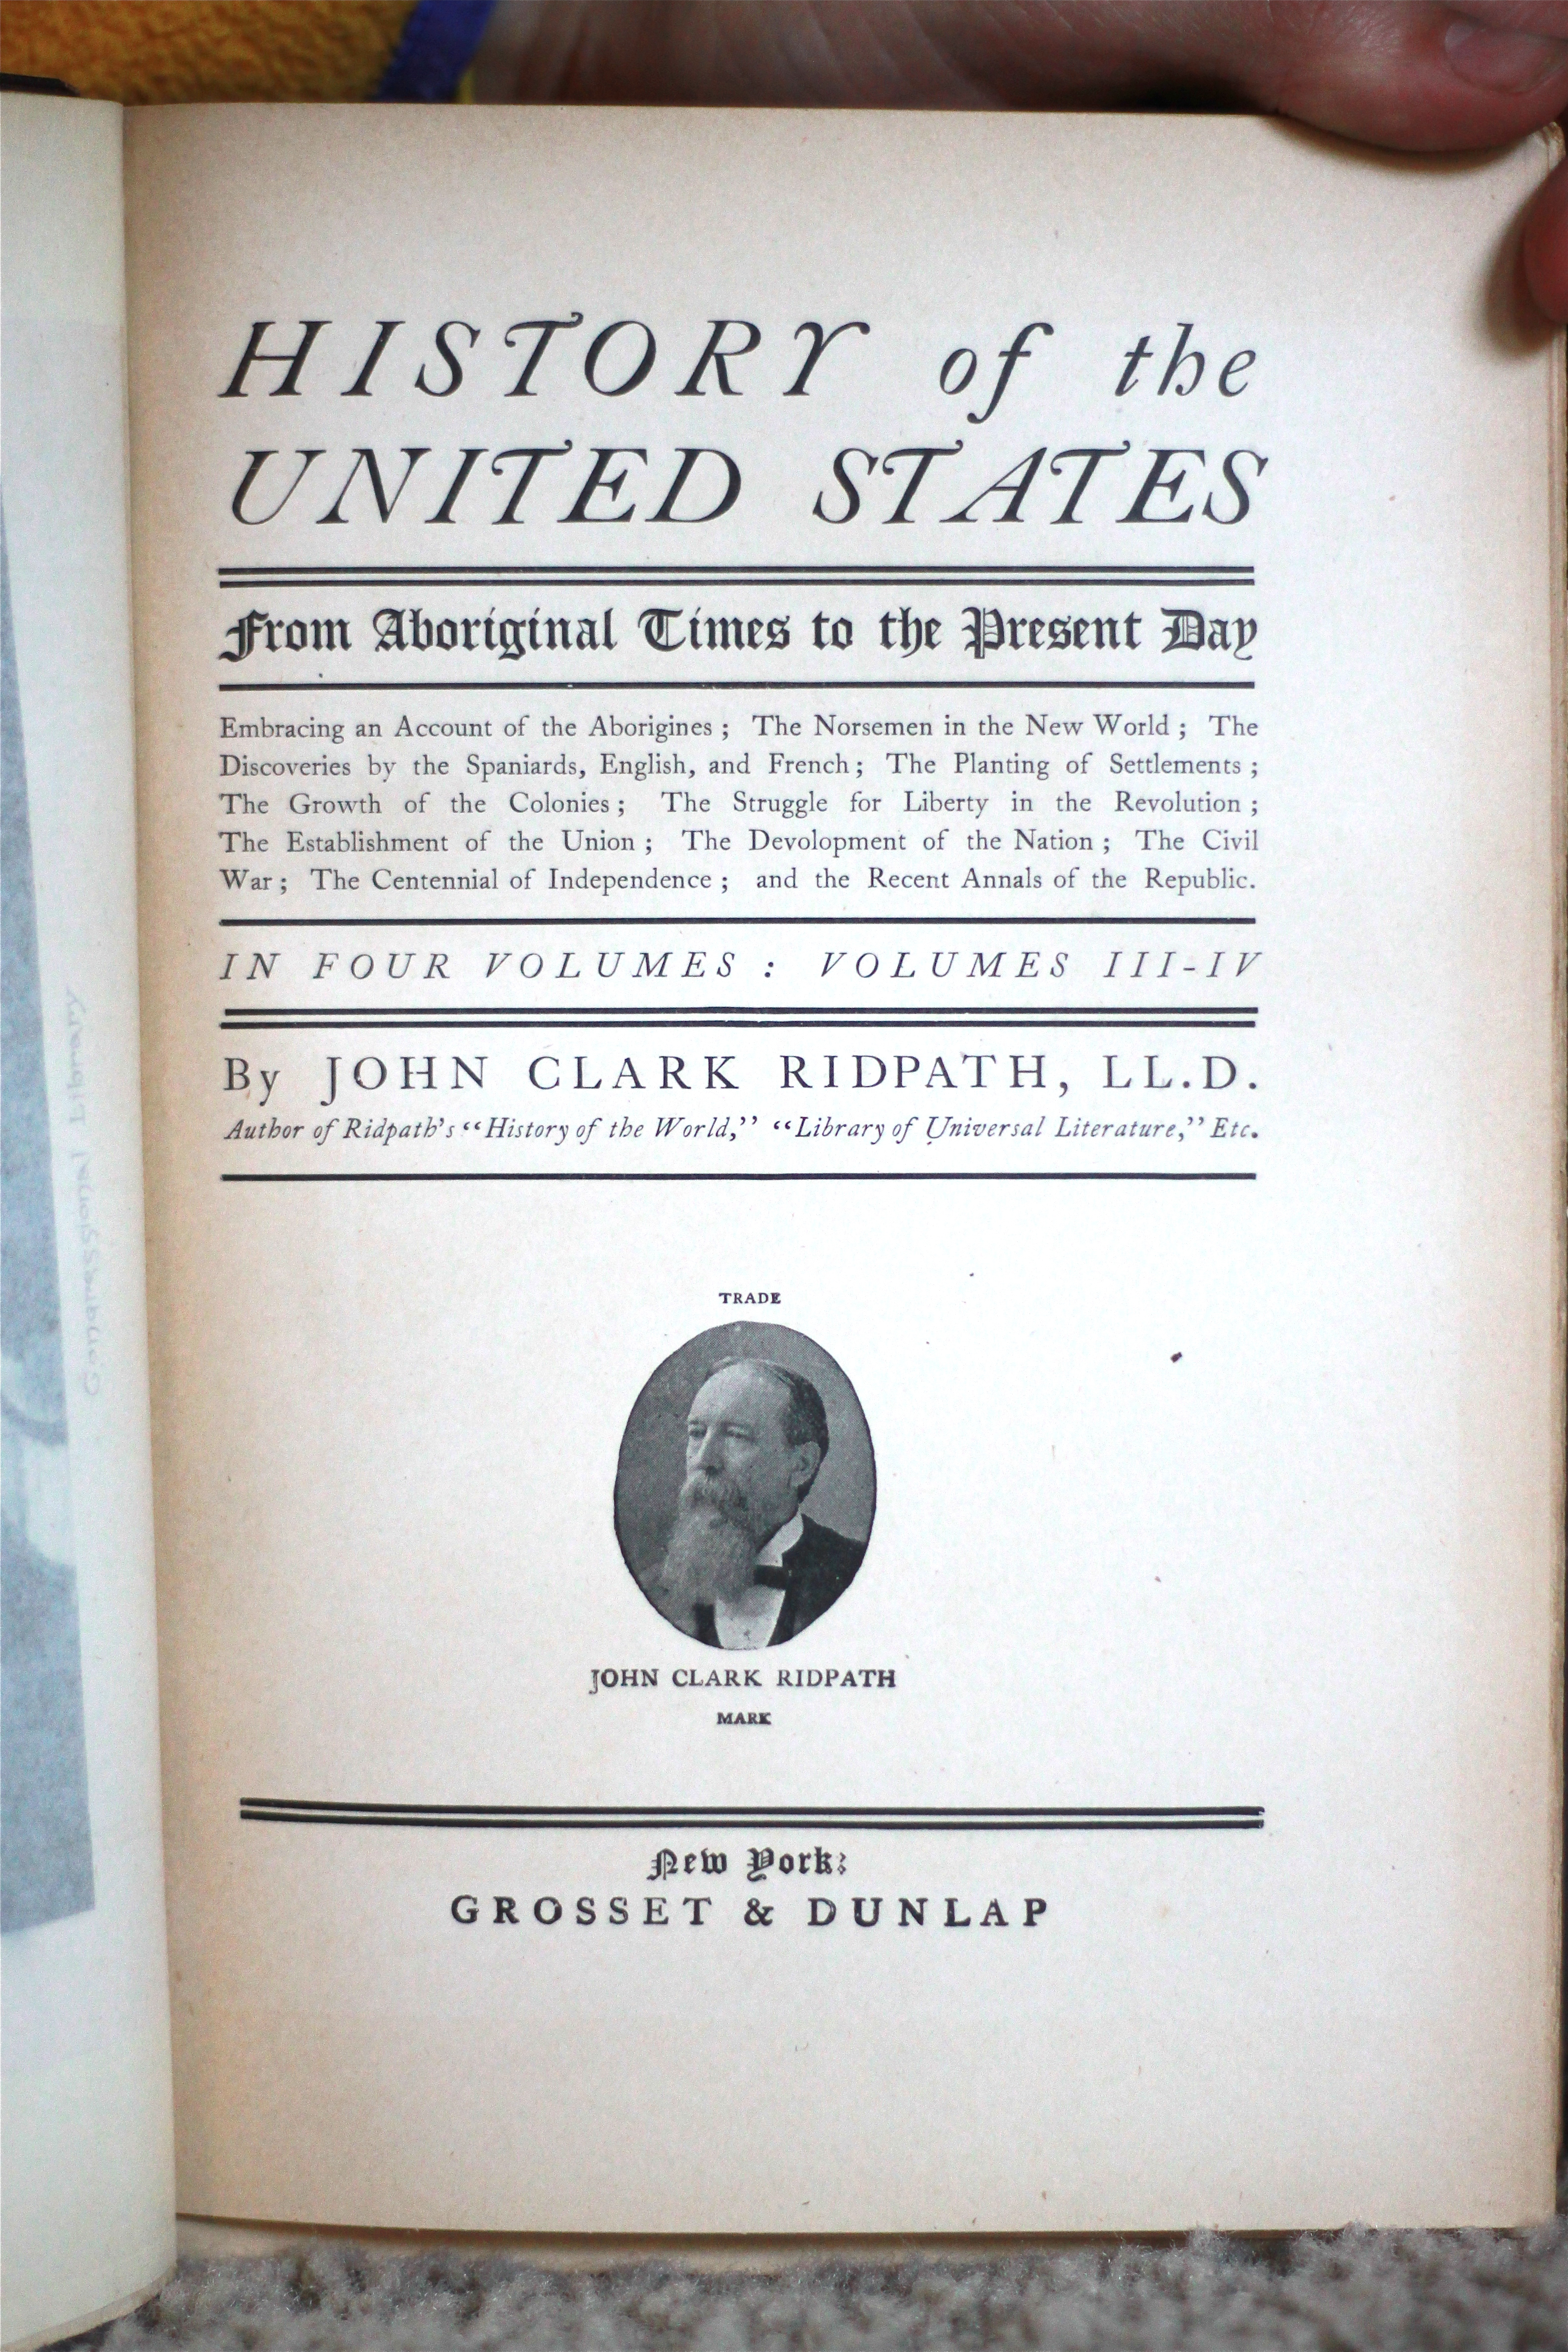 Title page and trademark